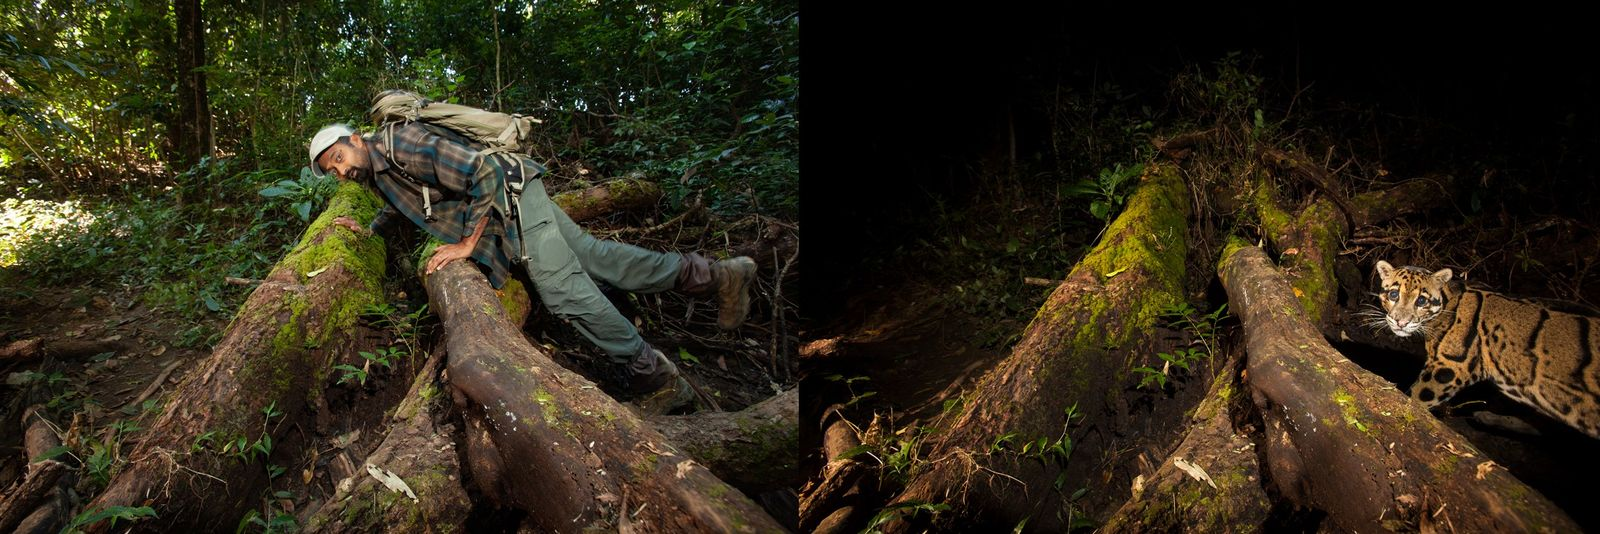 Testing a camera trap in the Dampa region of northeast India. The diligence paid off with ...